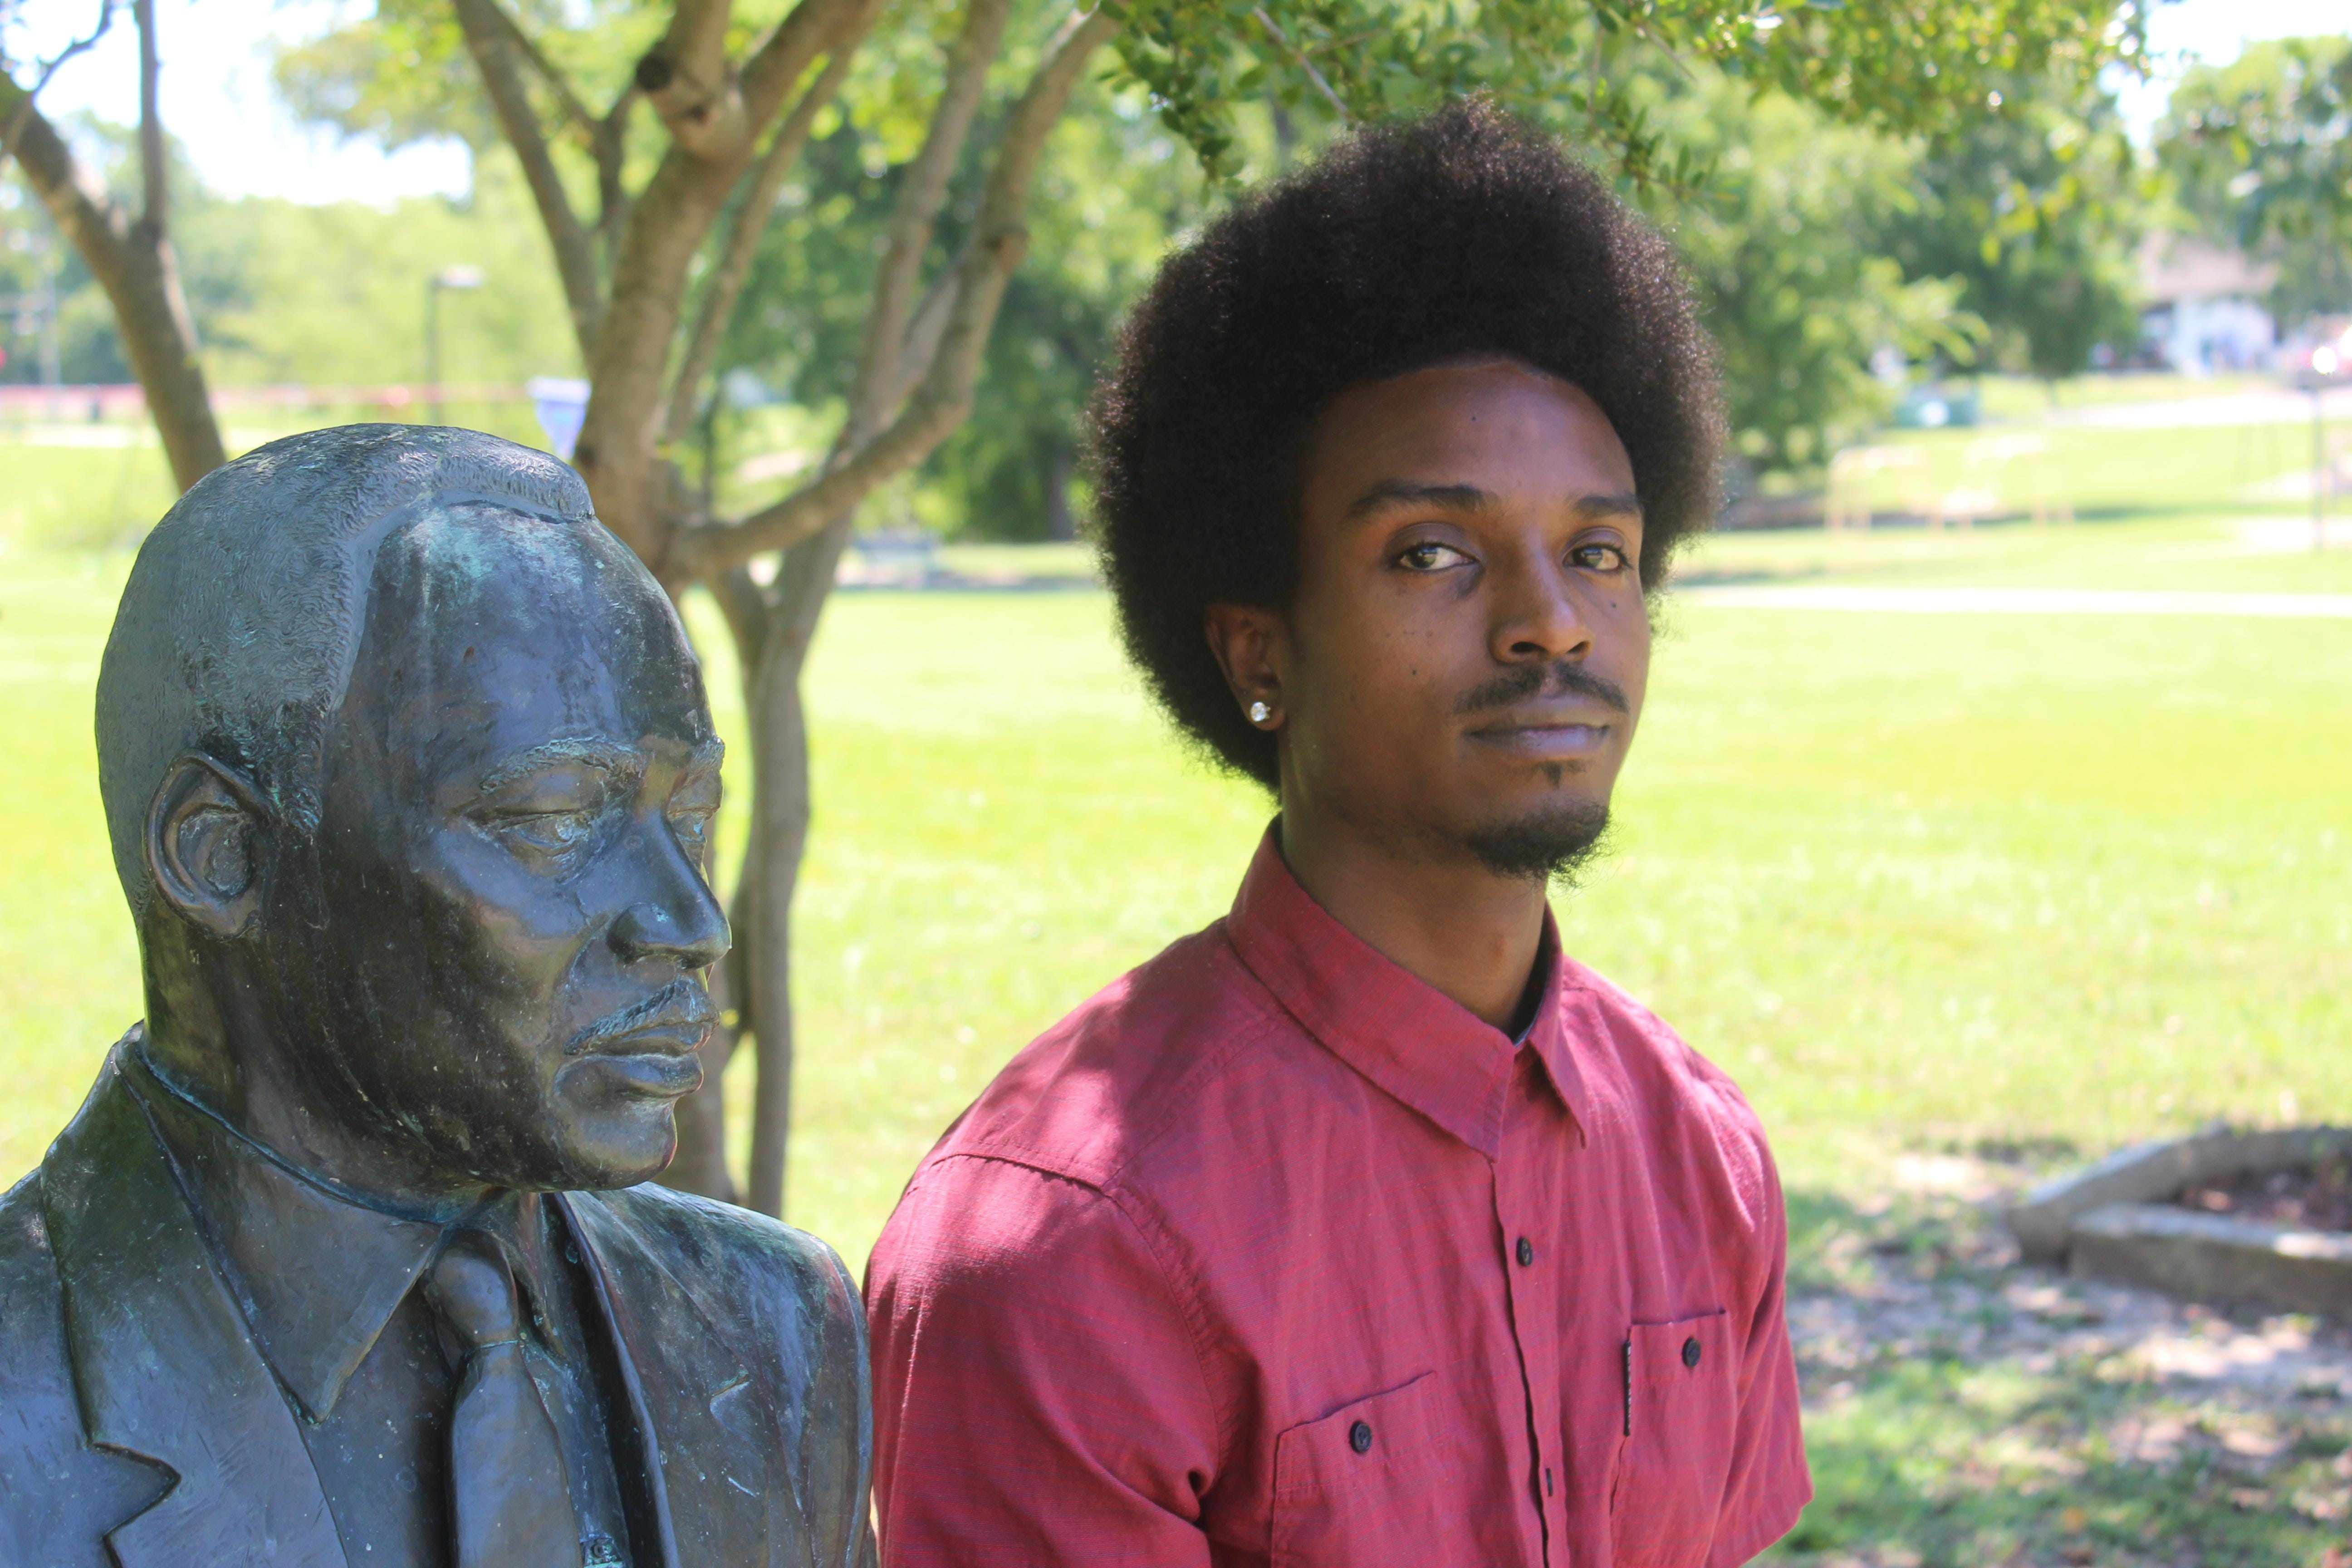 Joshua Shaw sits next to the Martin Luther King Jr. statute at East Street Park in Sherman on Aug. 2.